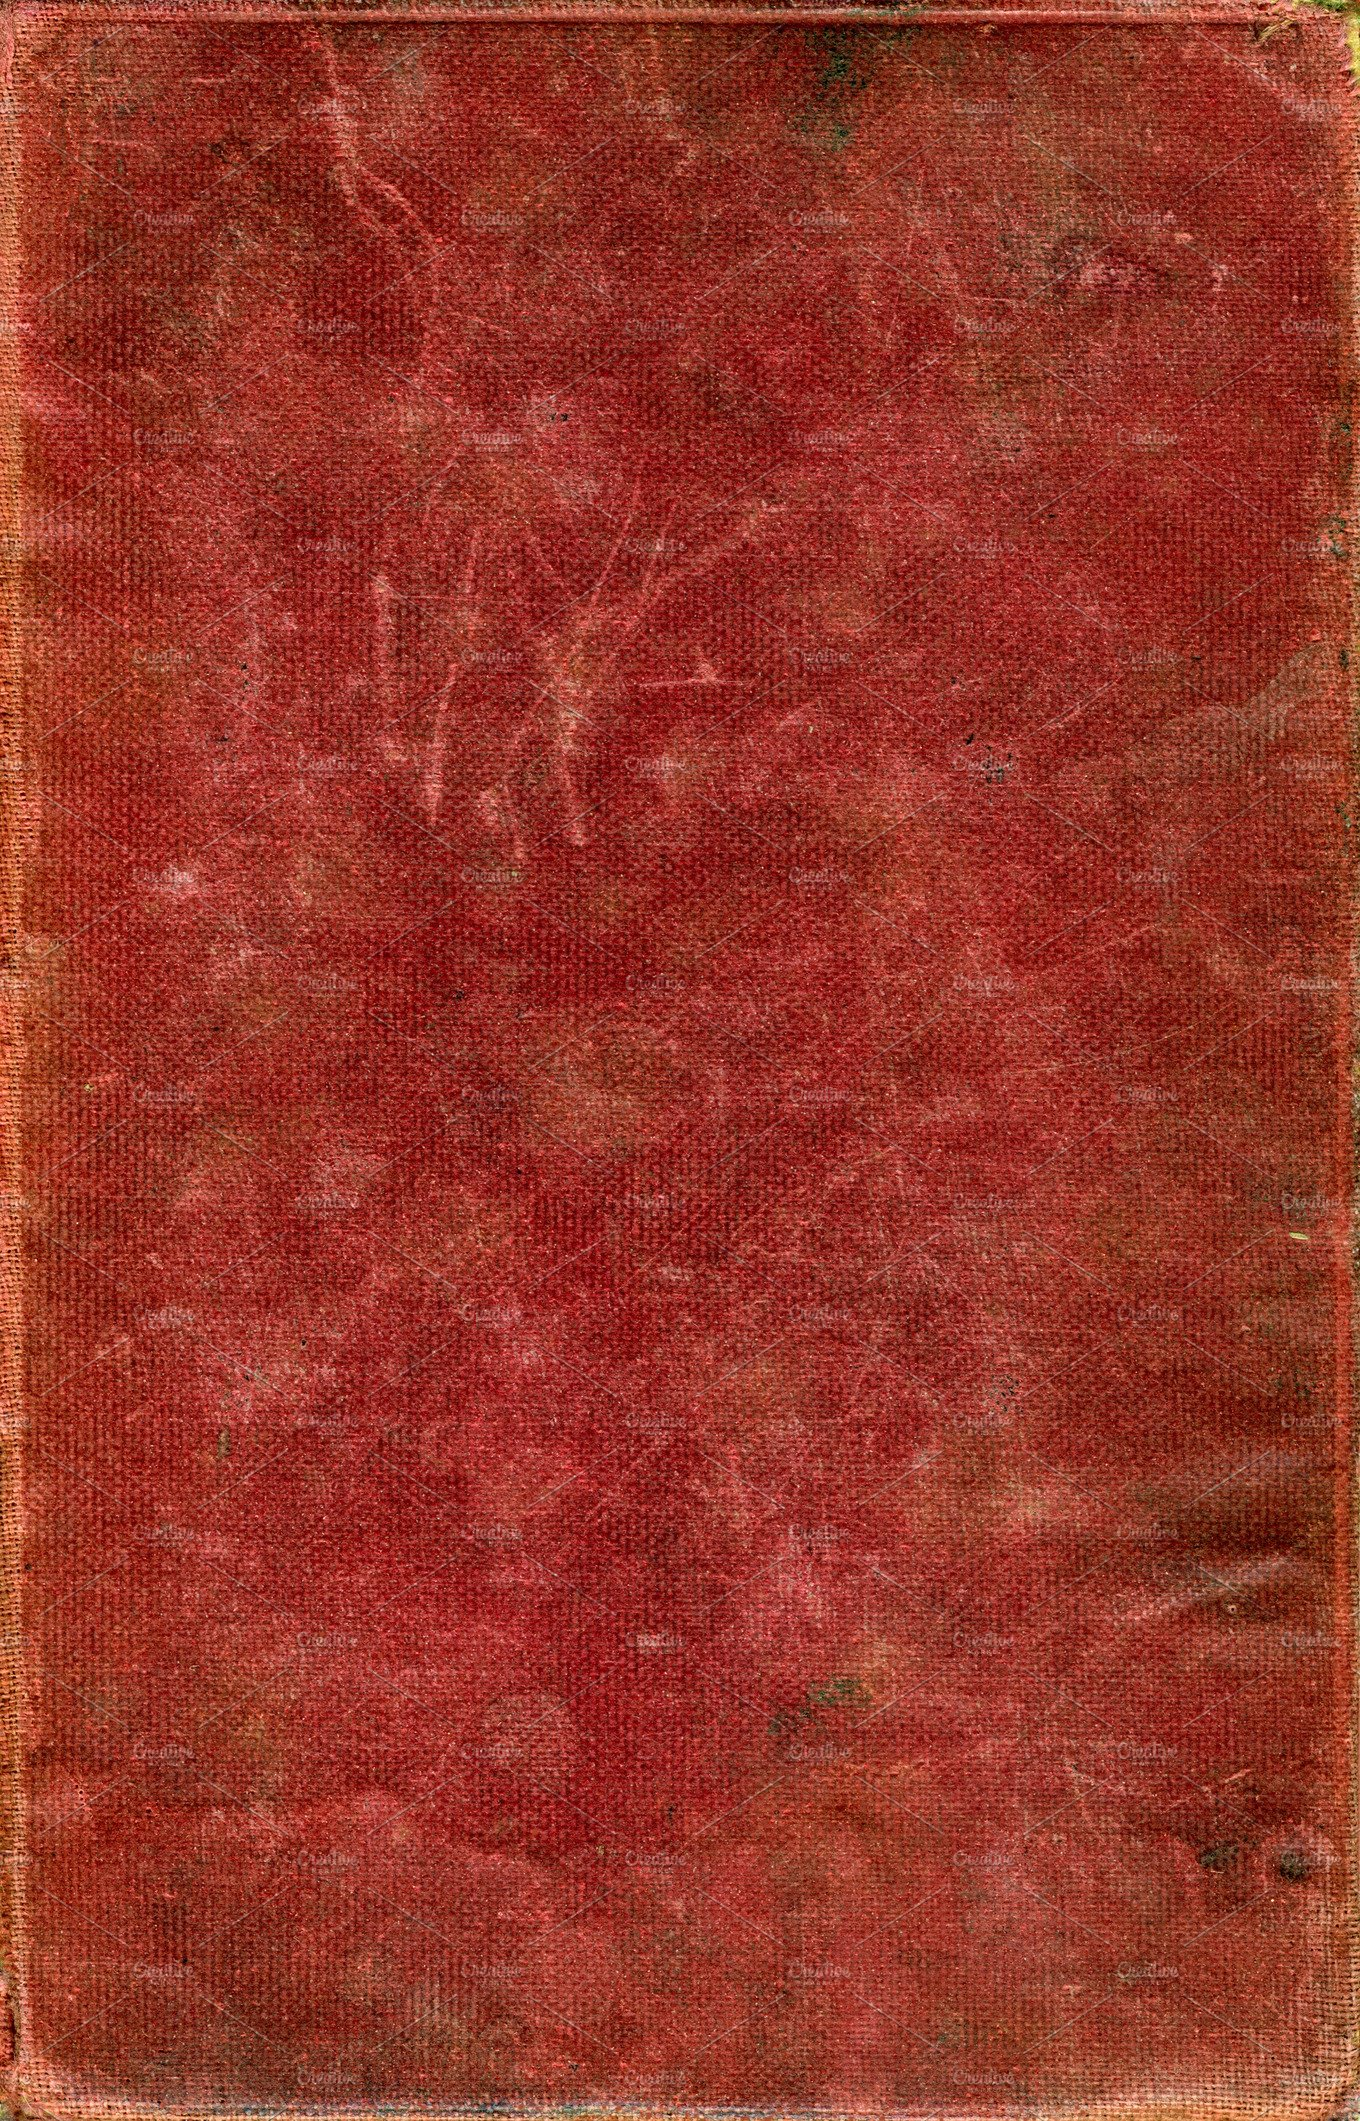 Old Fabric Book Cover Abstract Photos Creative Market